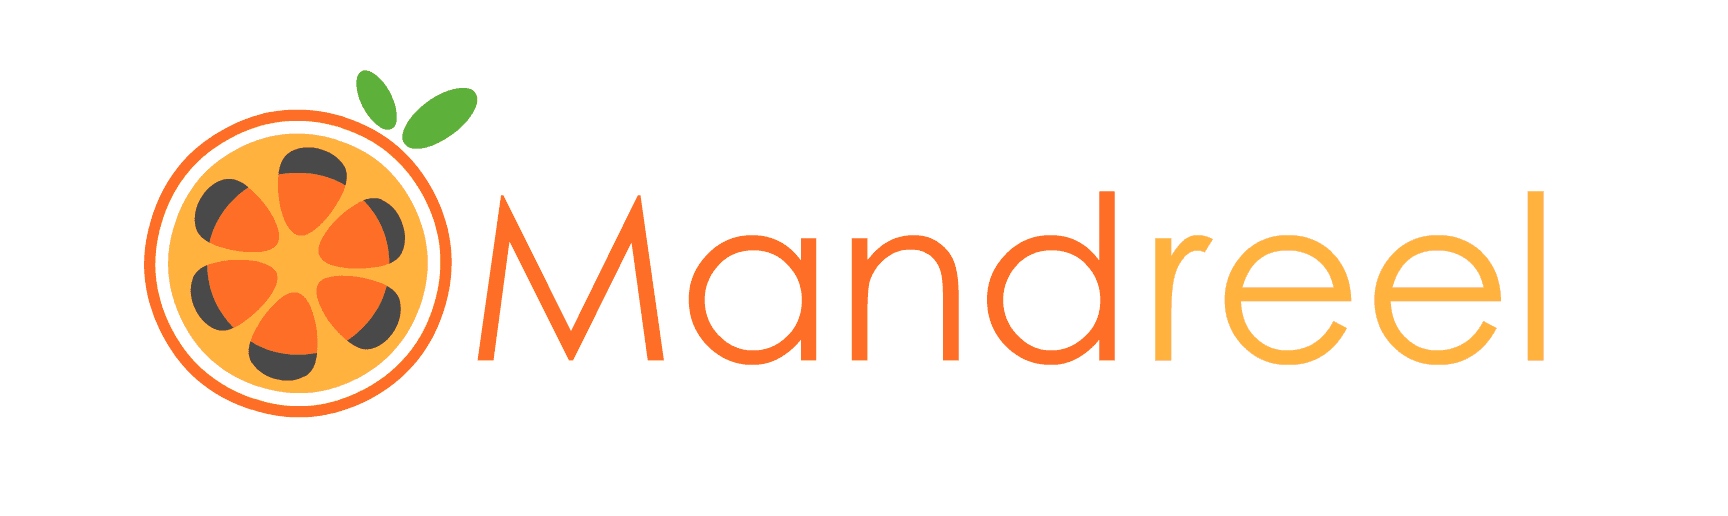 Blog - Mandreel